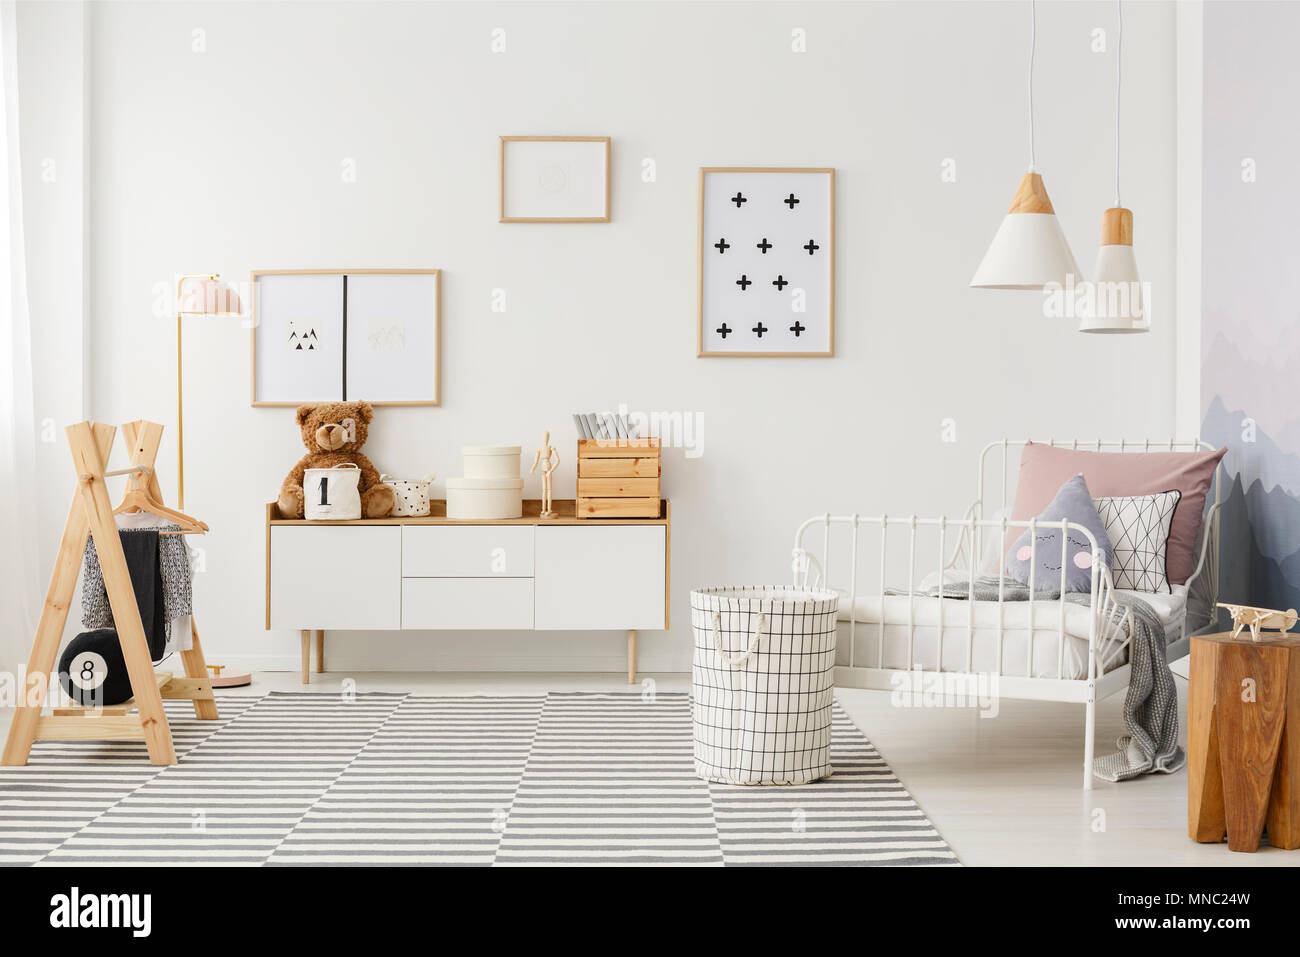 Wonderful Natural, Bright Kidu0027s Bedroom Interior With Wooden Furniture, Designer  Accessories And Posters On A